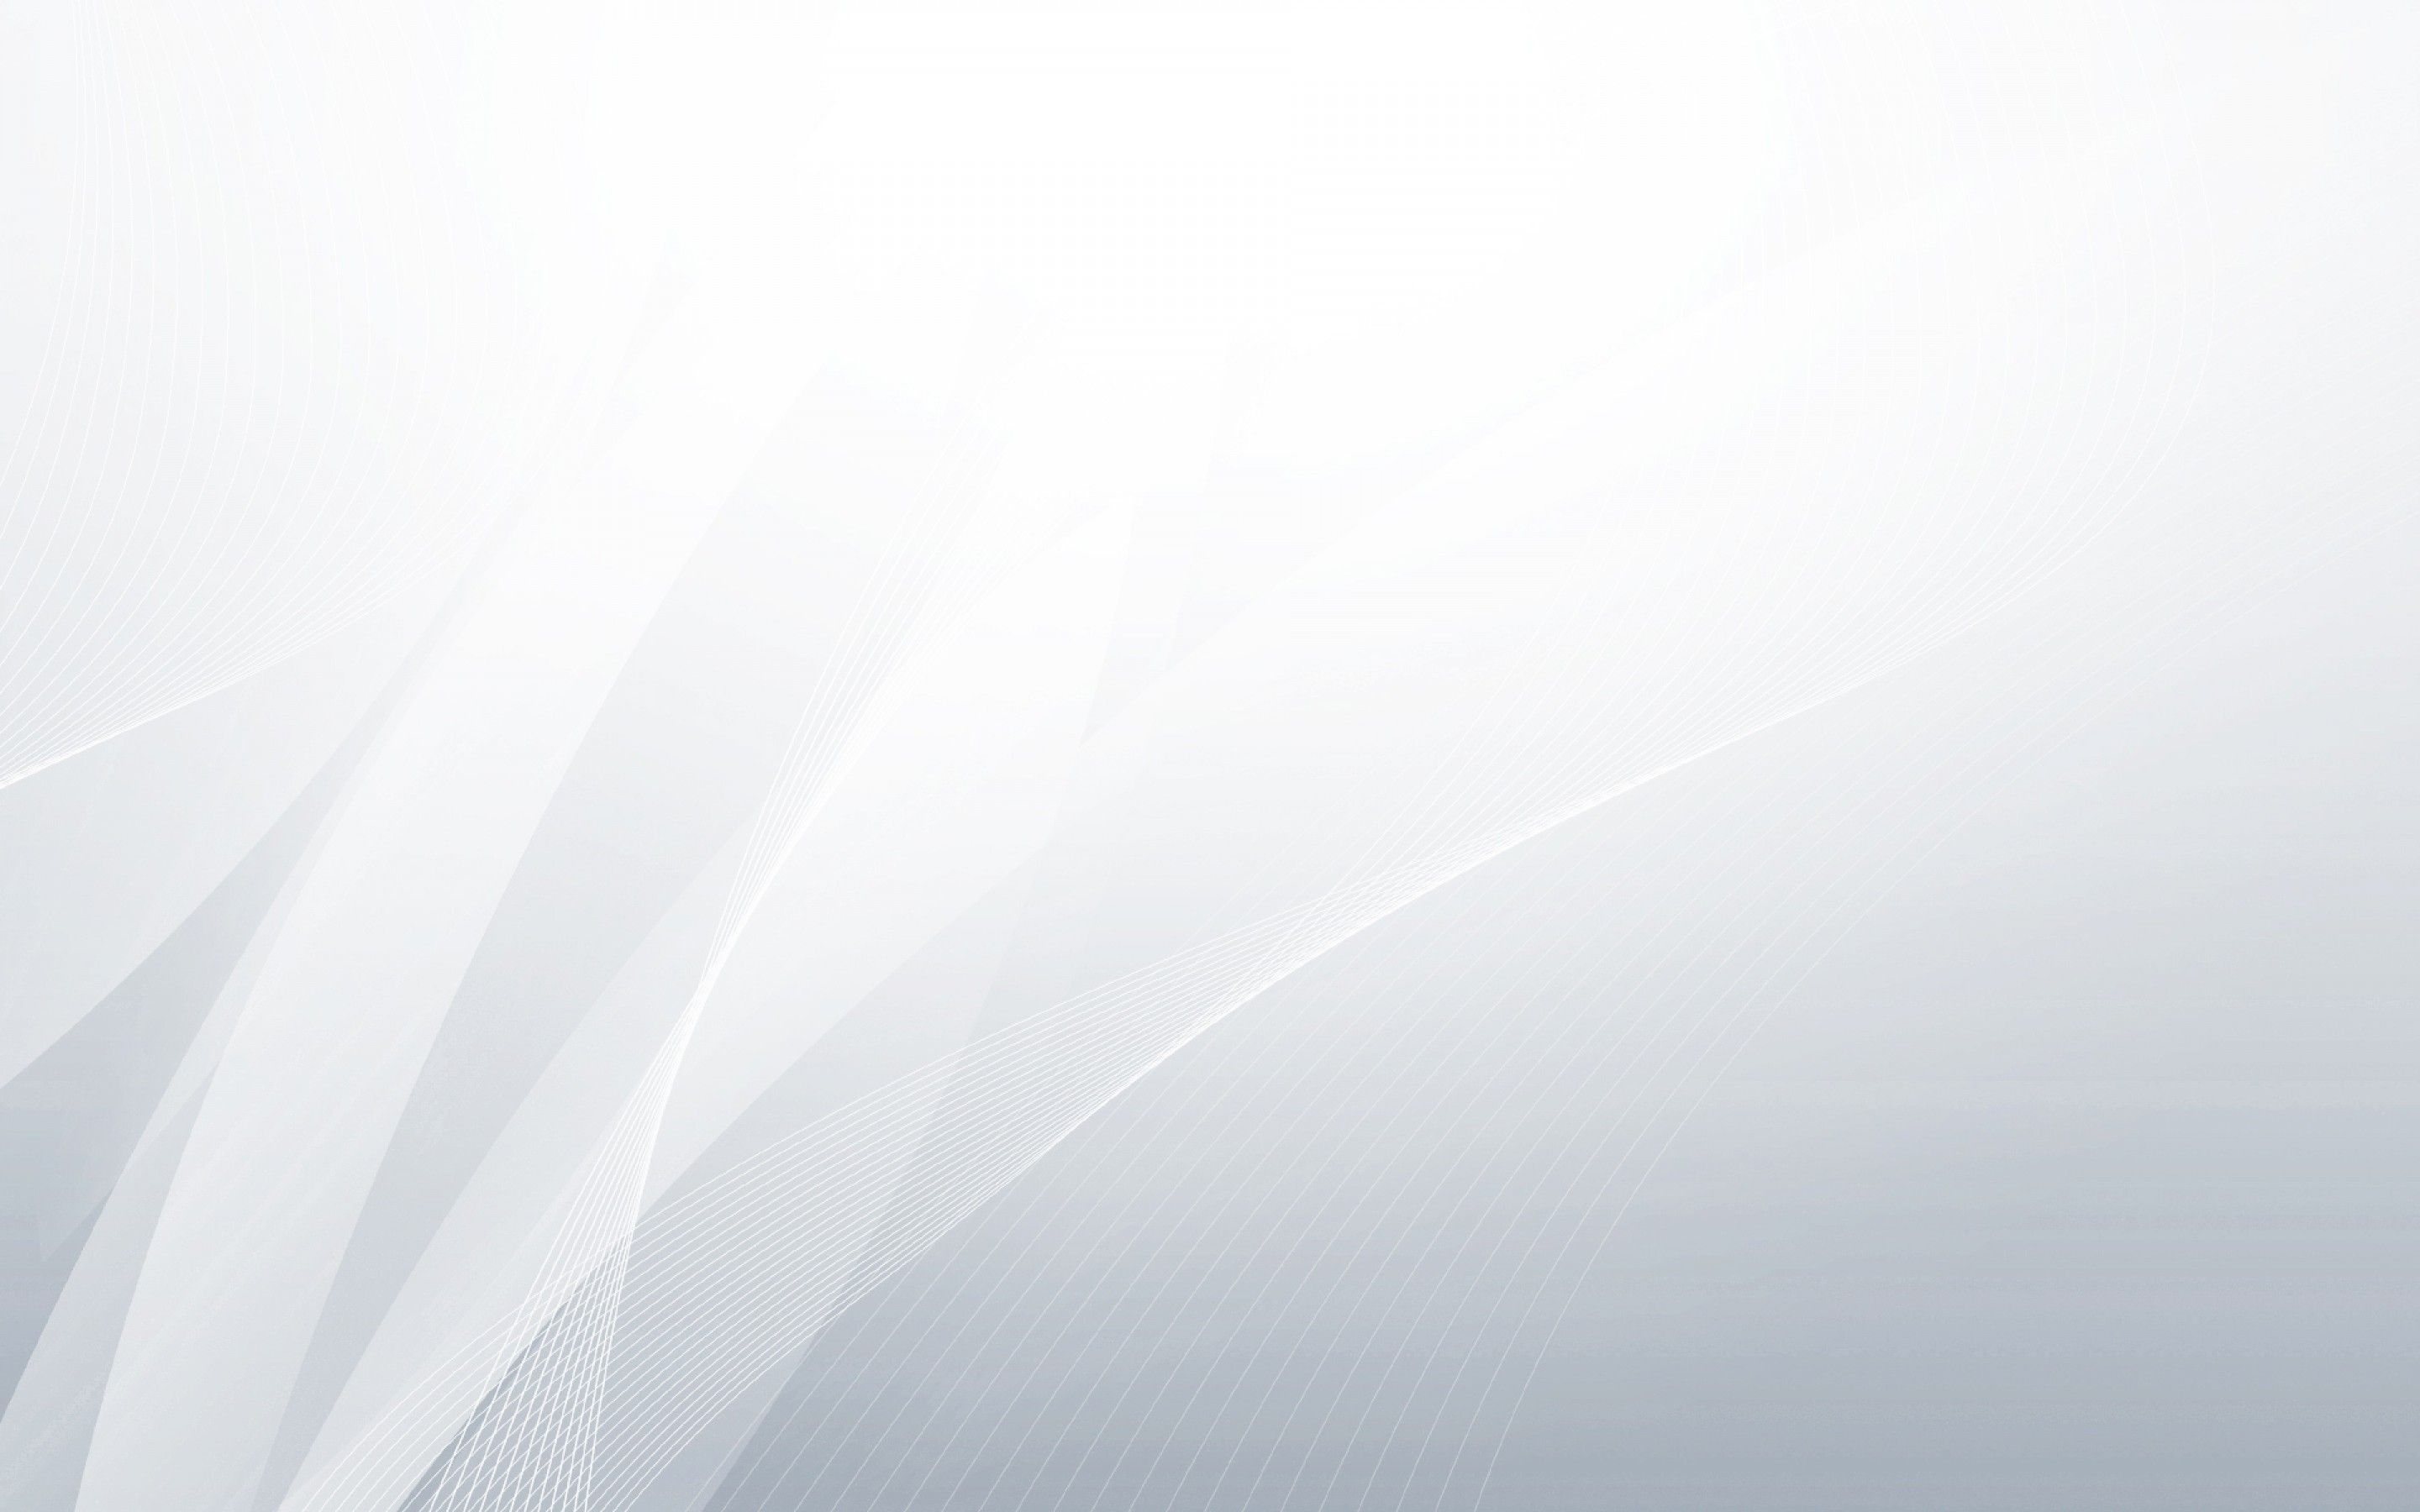 2880x1800 Download 2880x1800 Minimalistic, Waves, White, Gradient Wallpapers ...